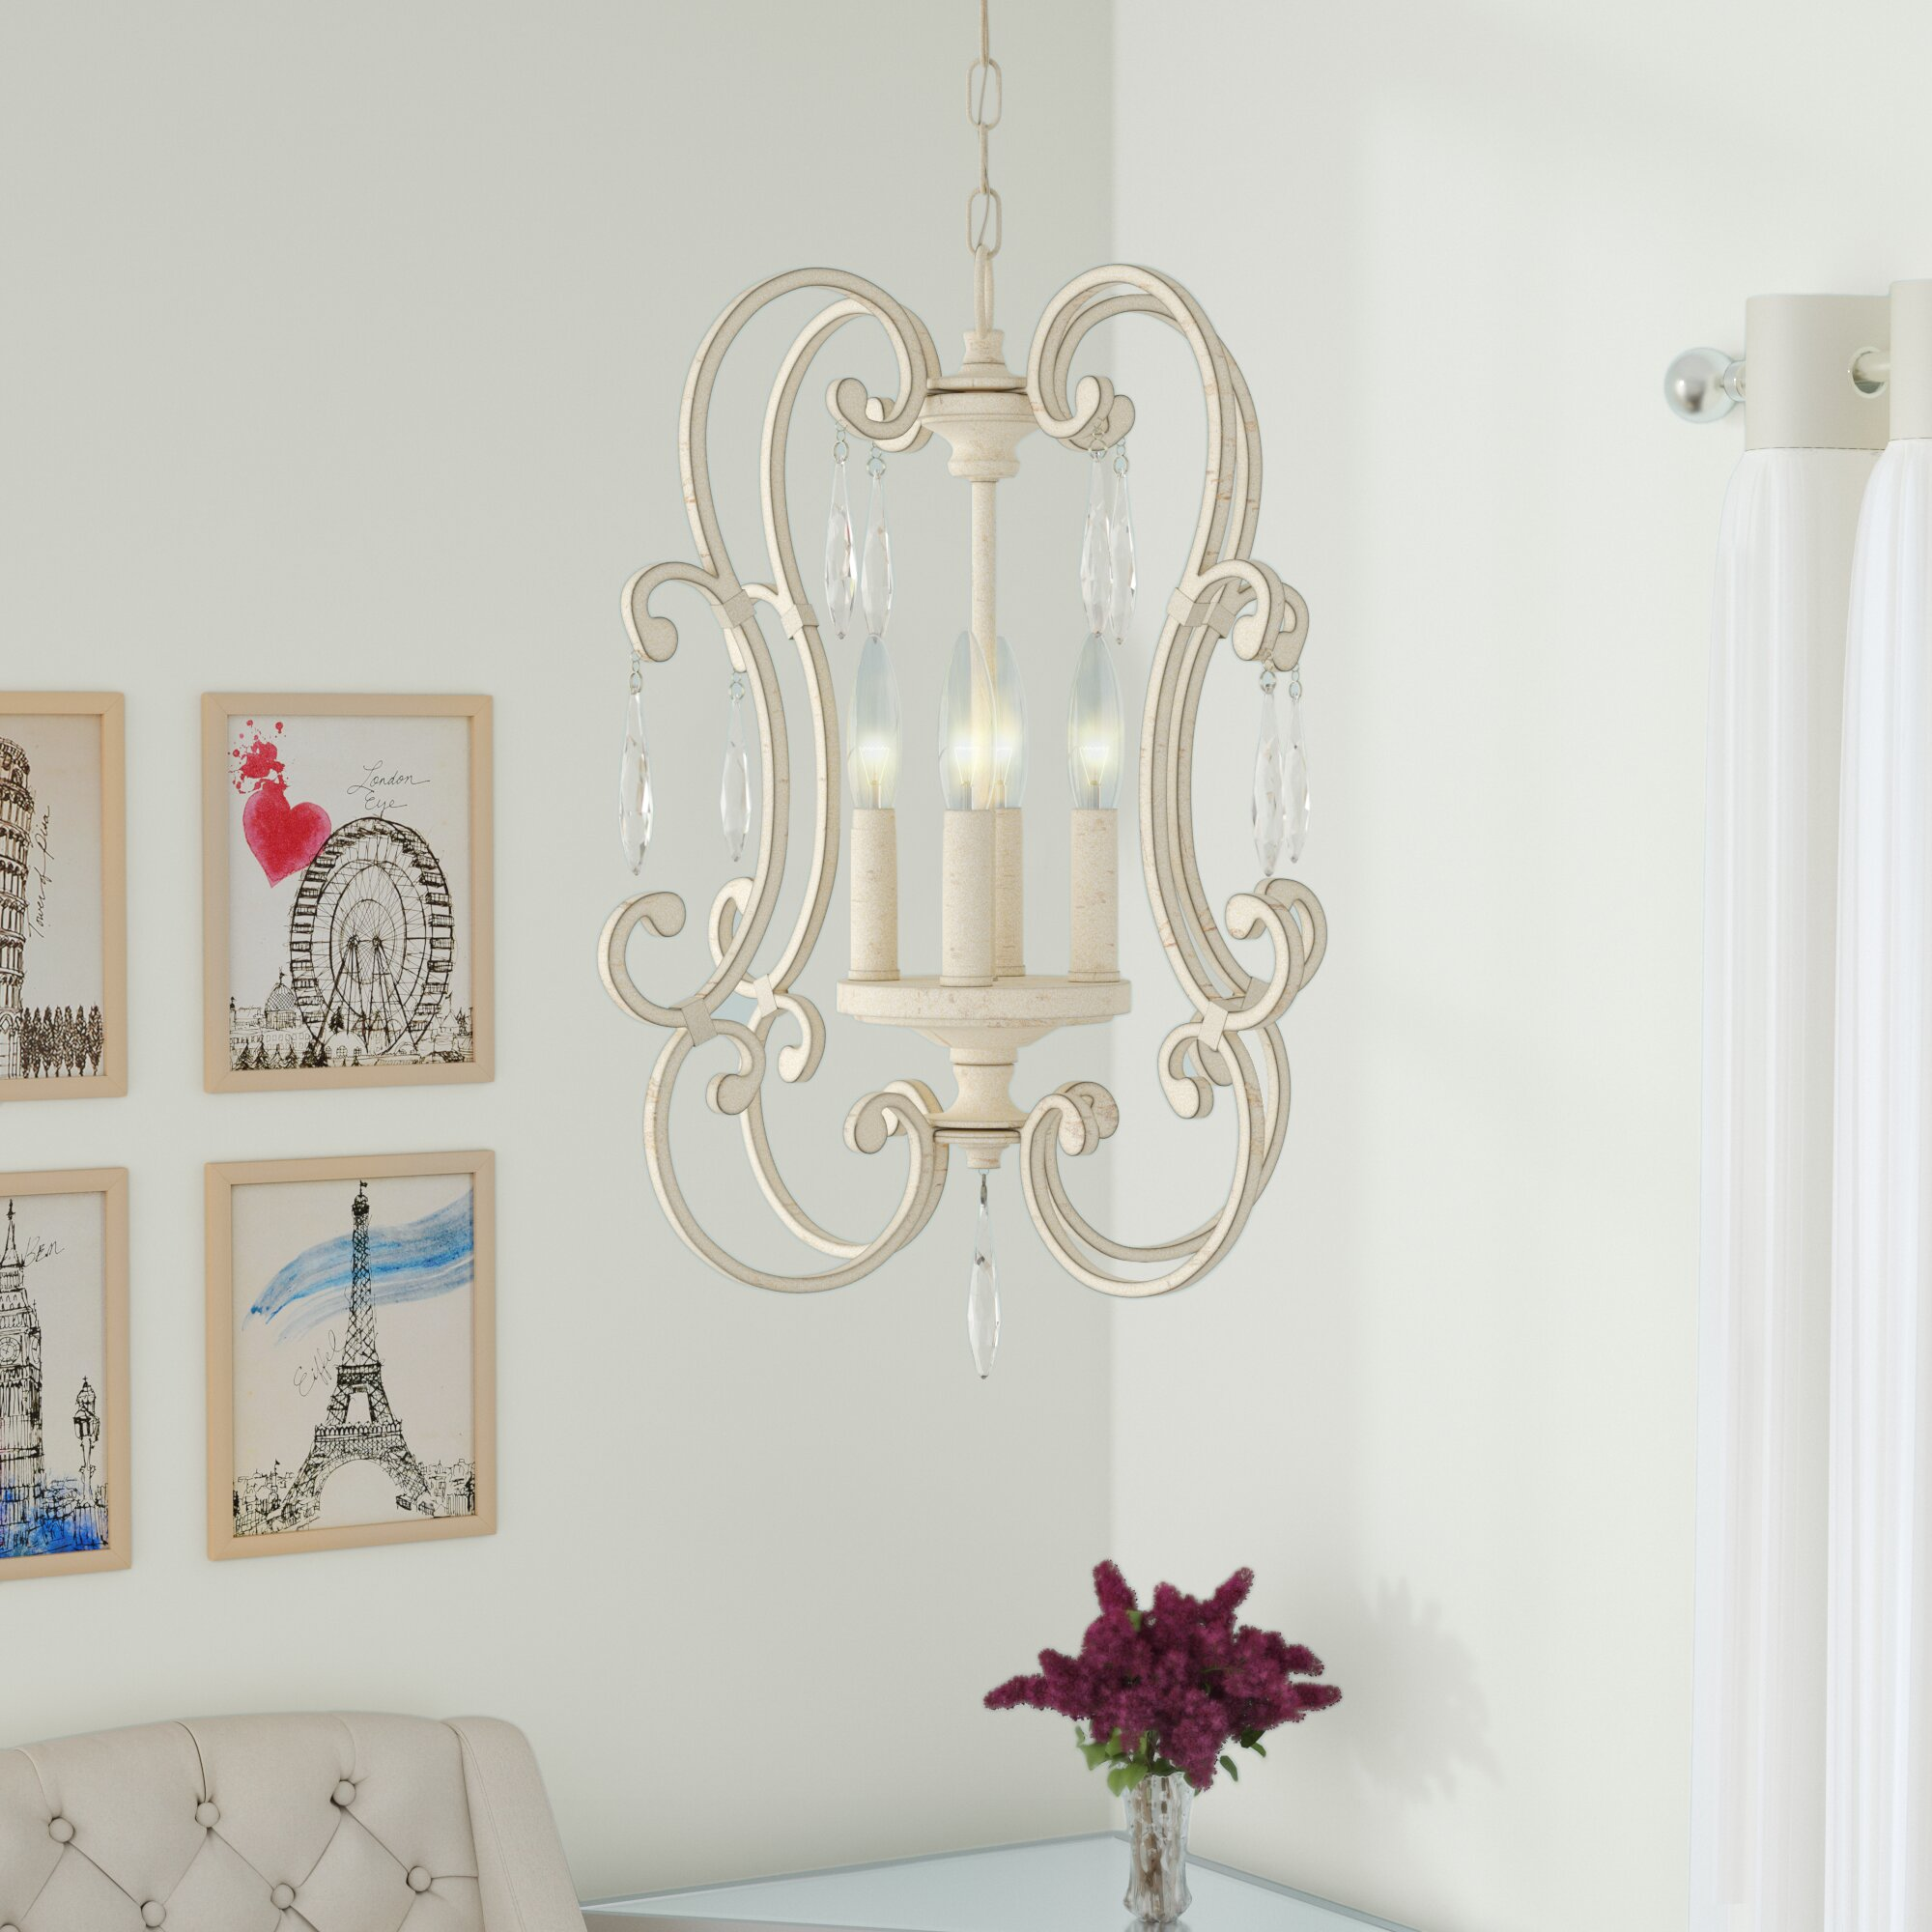 House Of Hampton Oriana 4 Light Candle Style Chandelier & Reviews -